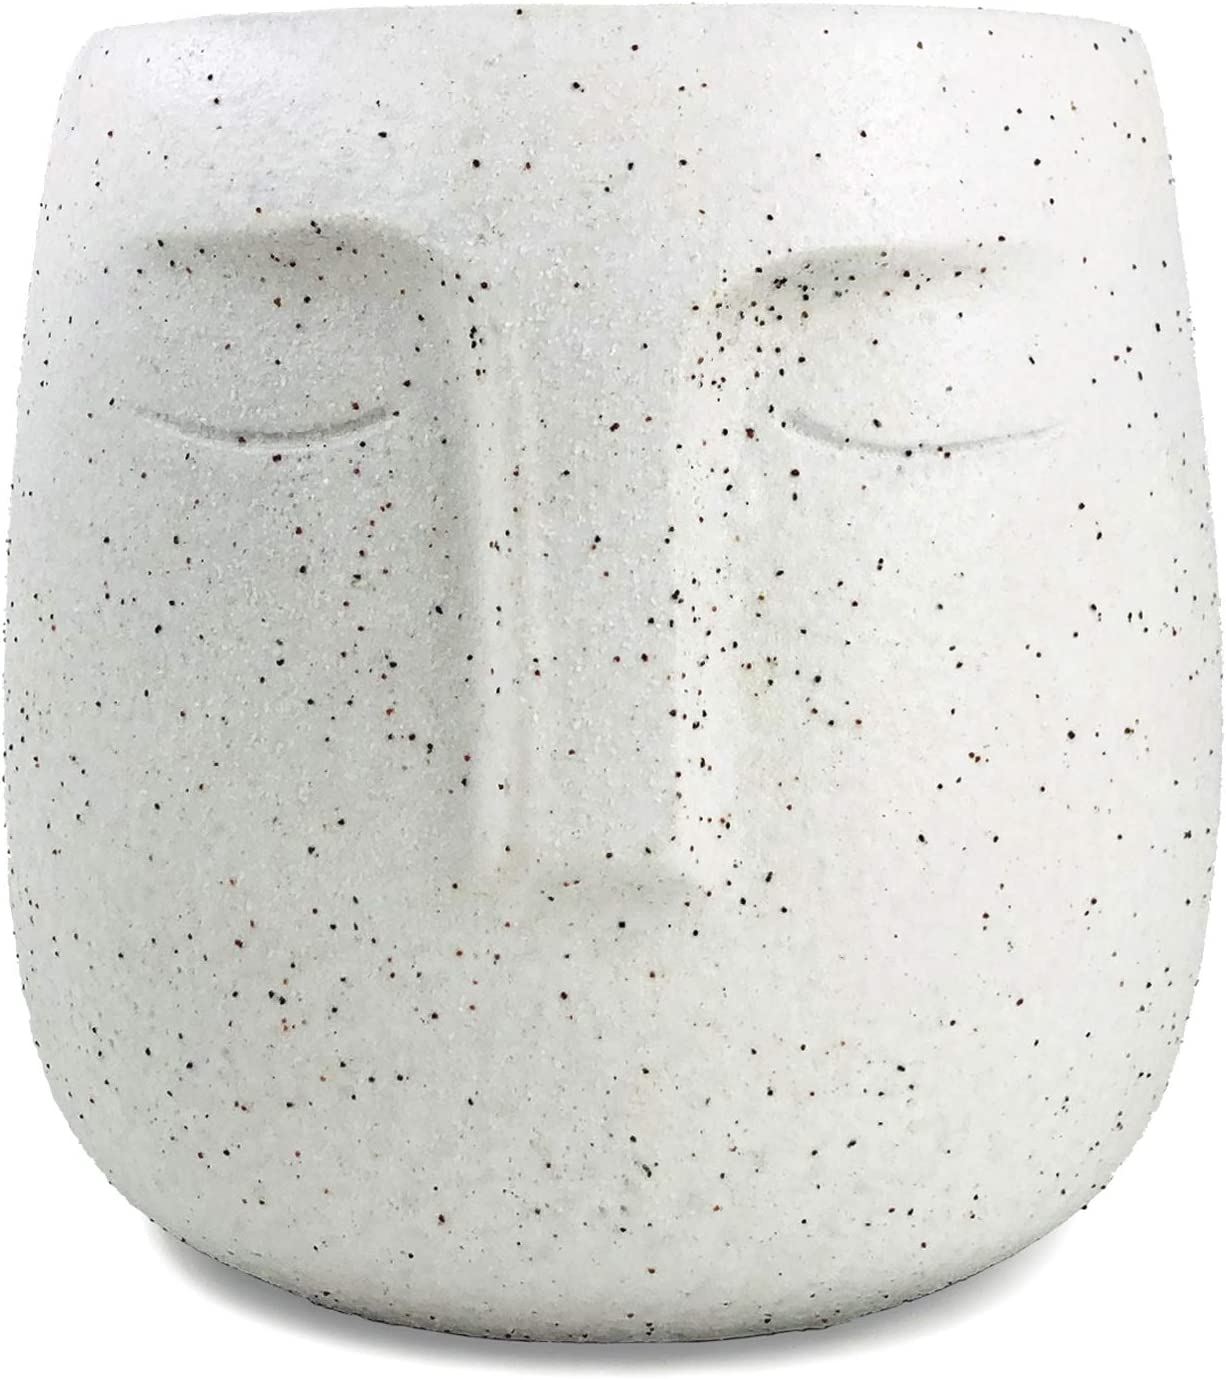 Concrete Planter, Urn for Plants, Modern Indoor/Outdoor Head Planter Face Vase, Statue Plant Pot for Home Decoration, Gift (5'' Tall, White)